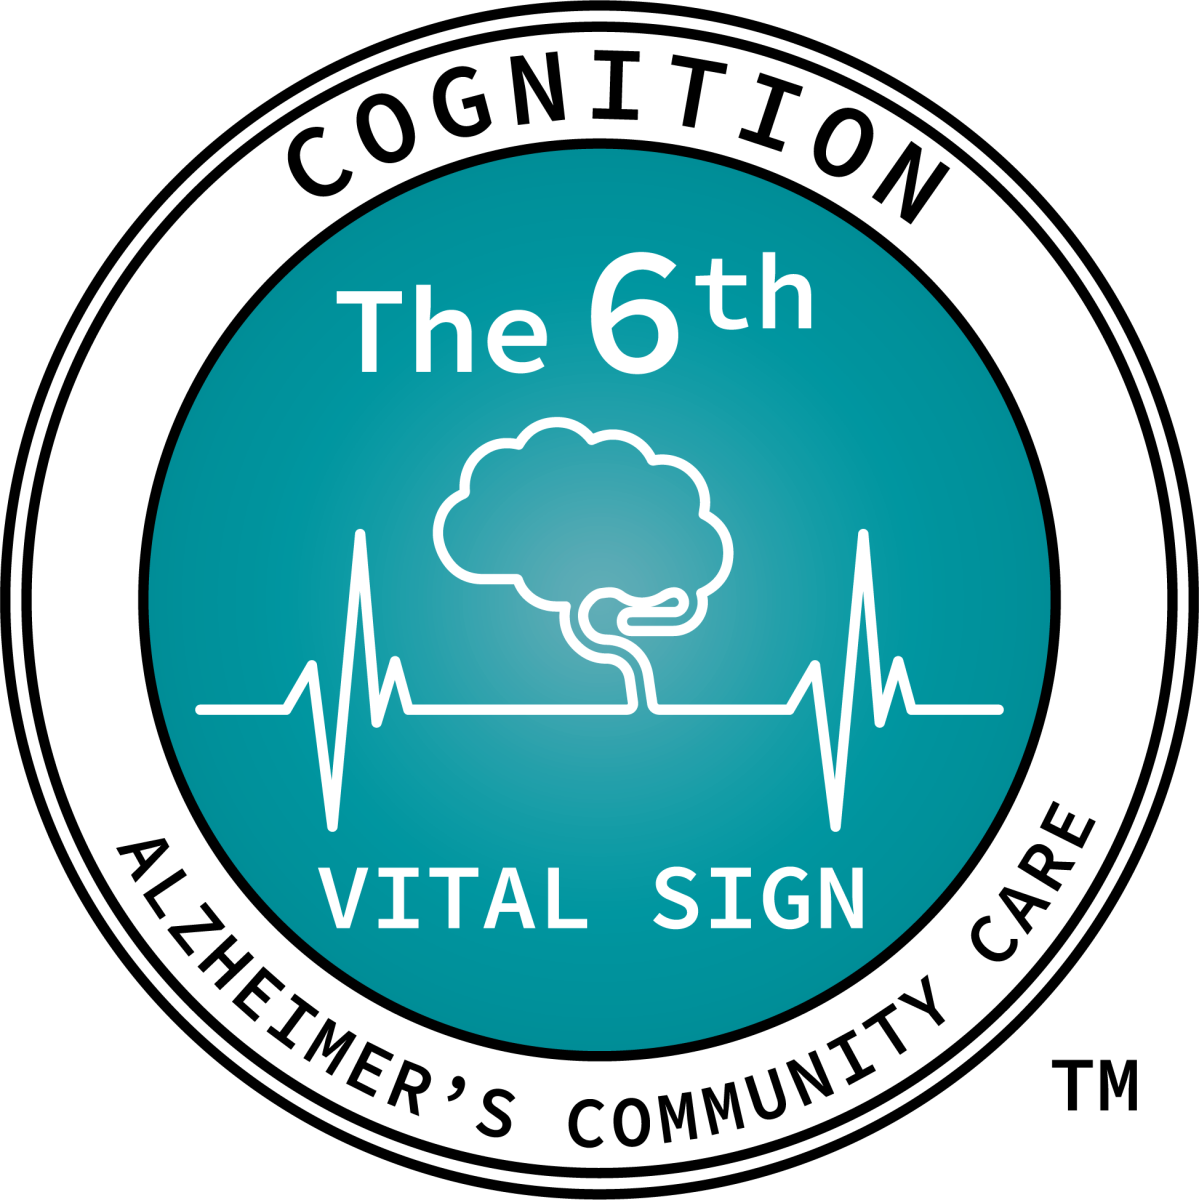 Cognition is The 6th Vital Sign